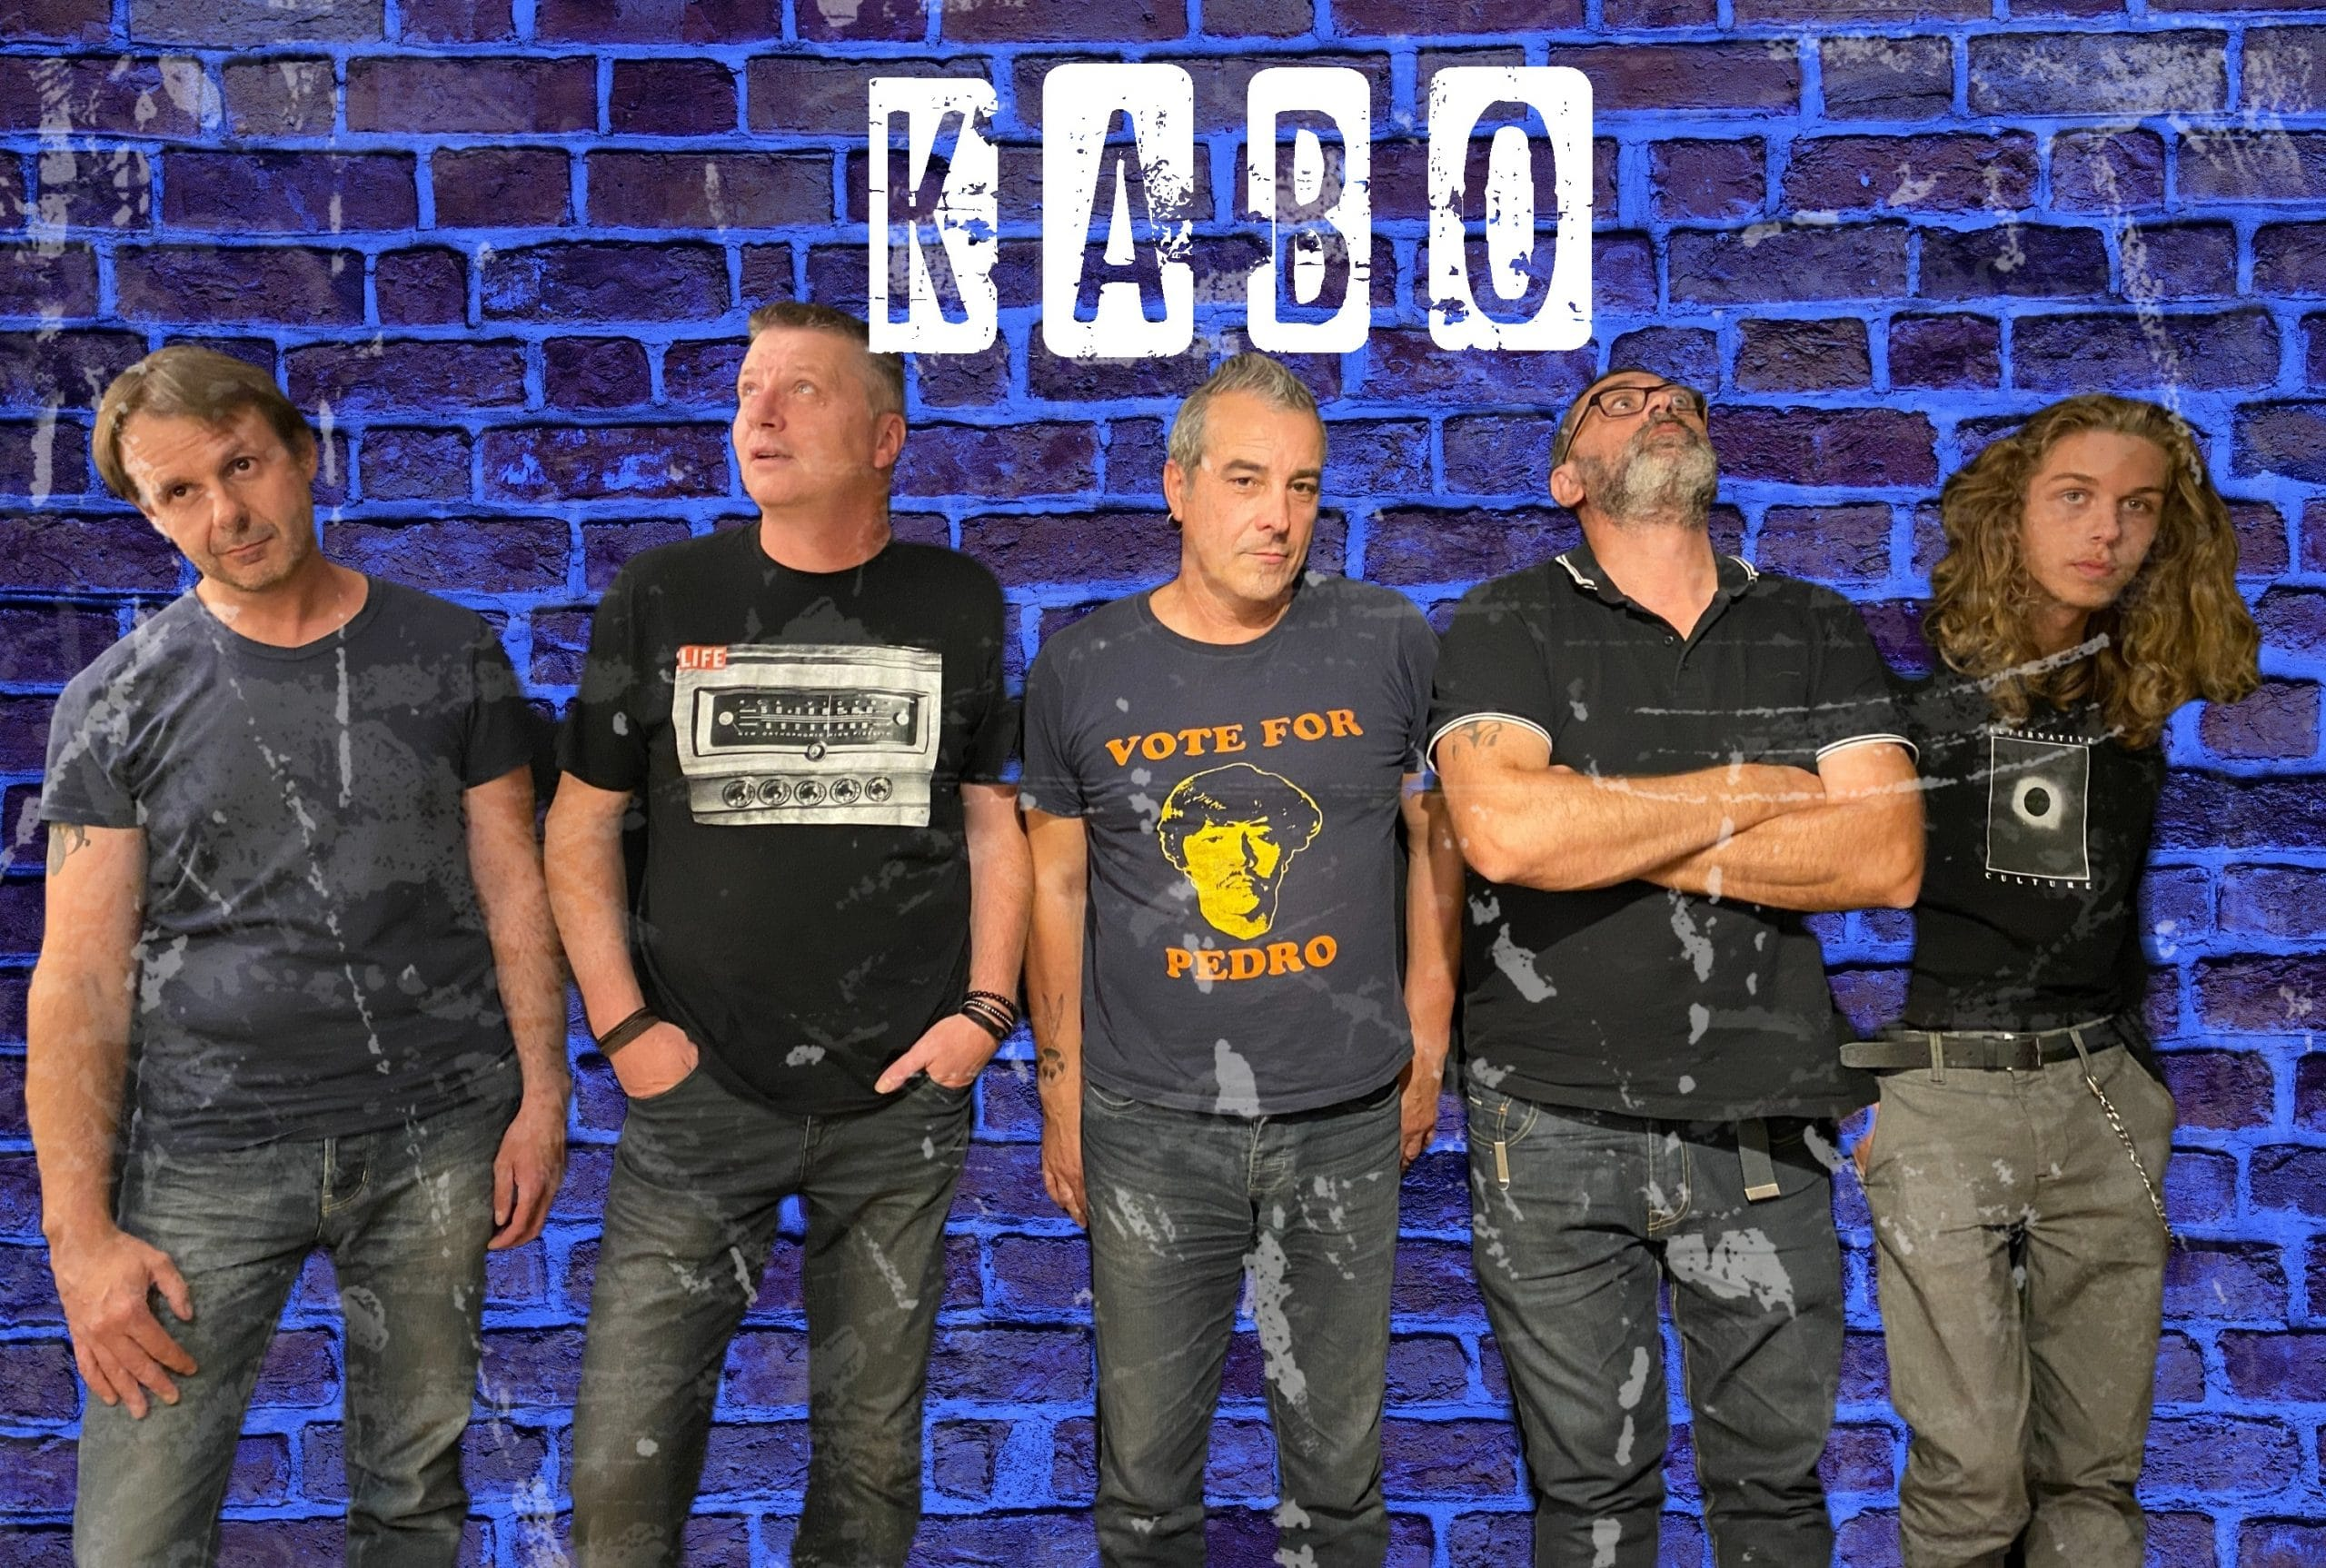 Kabo rock energique france